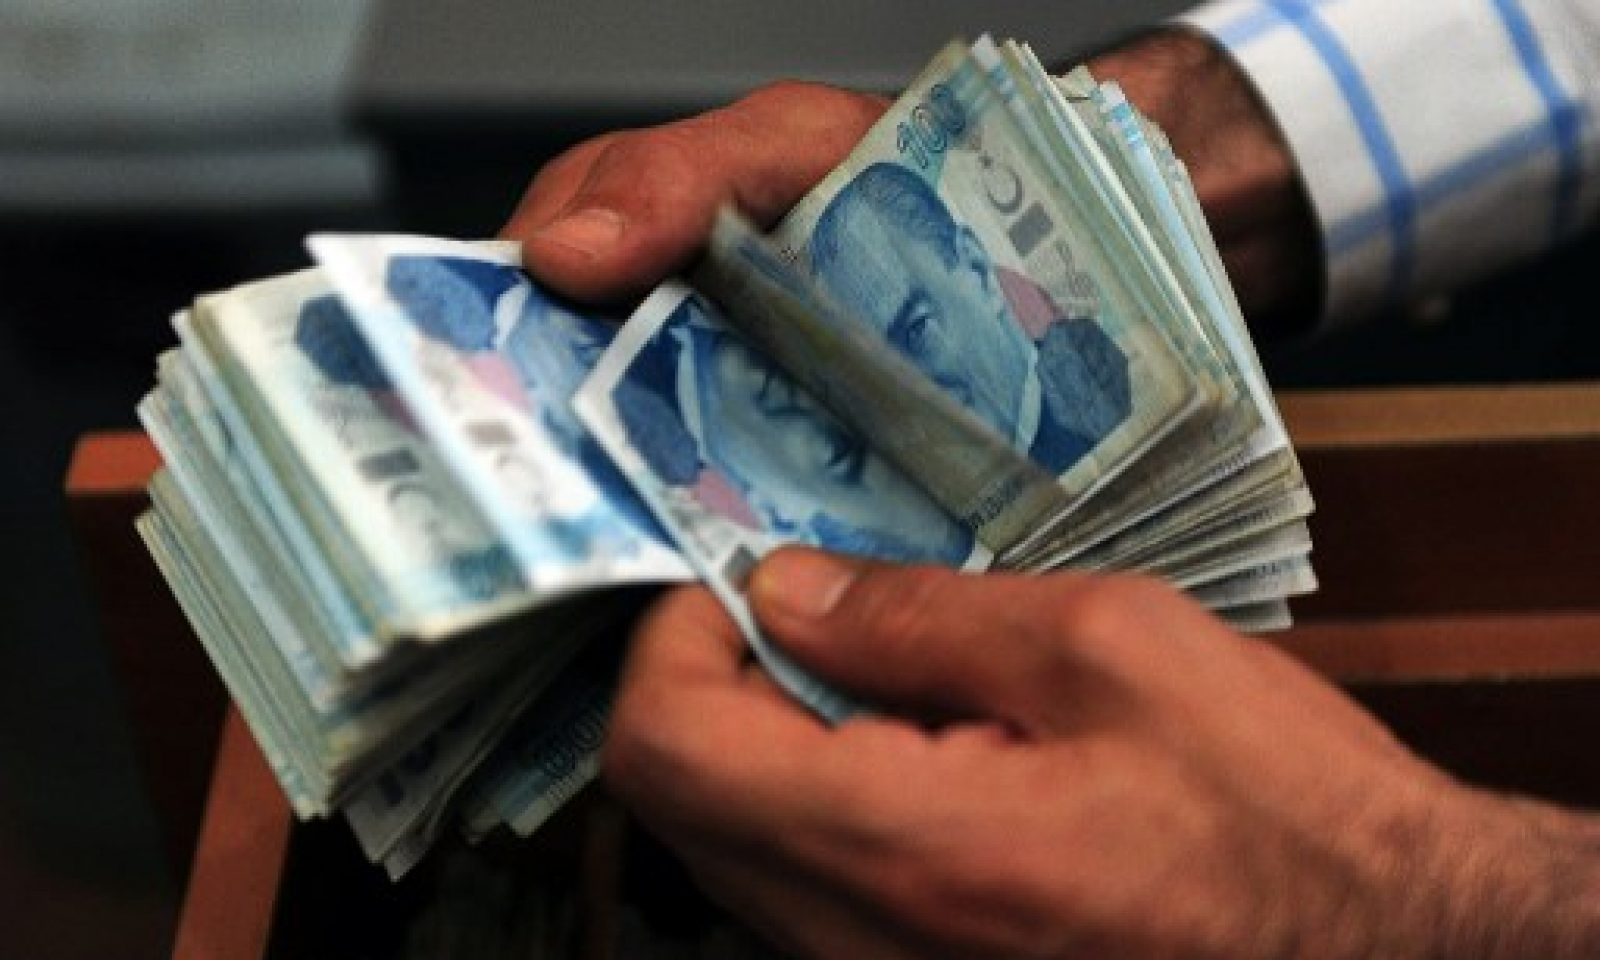 Turkey: Annual inflation at 11.77% in August